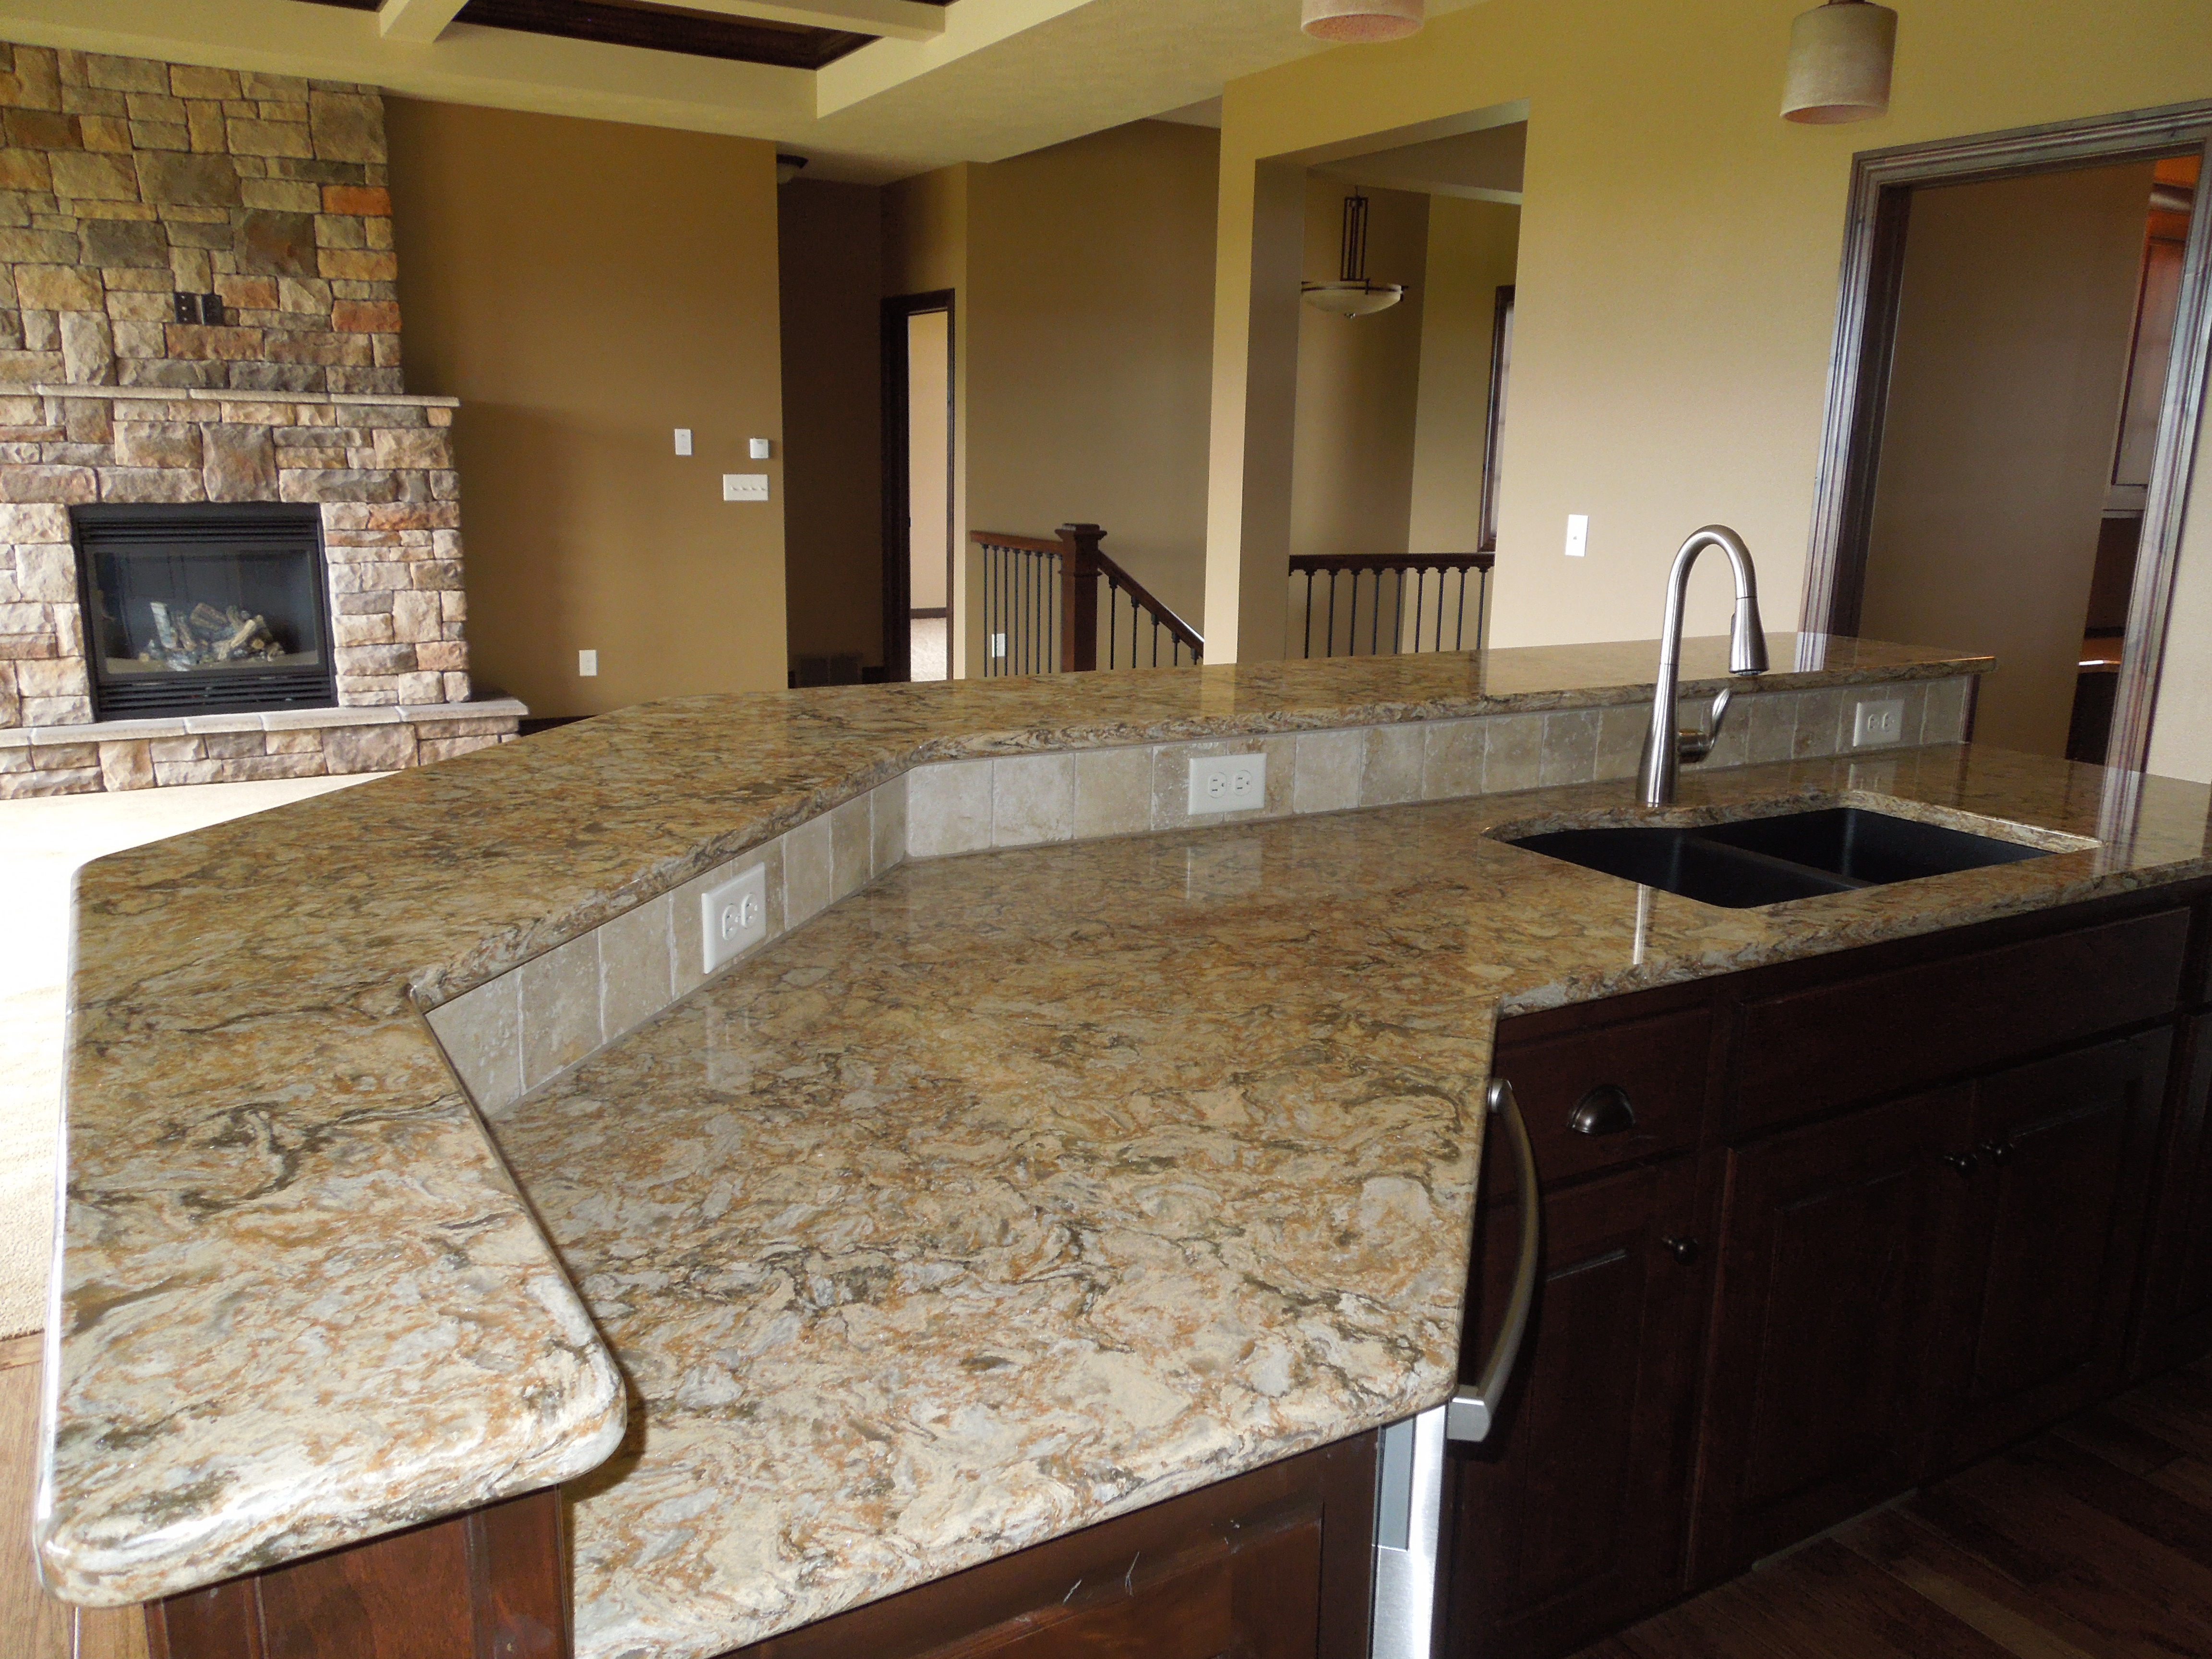 Cambria more than 100 designs creative surfaces blog for Kitchen design ideas quartz